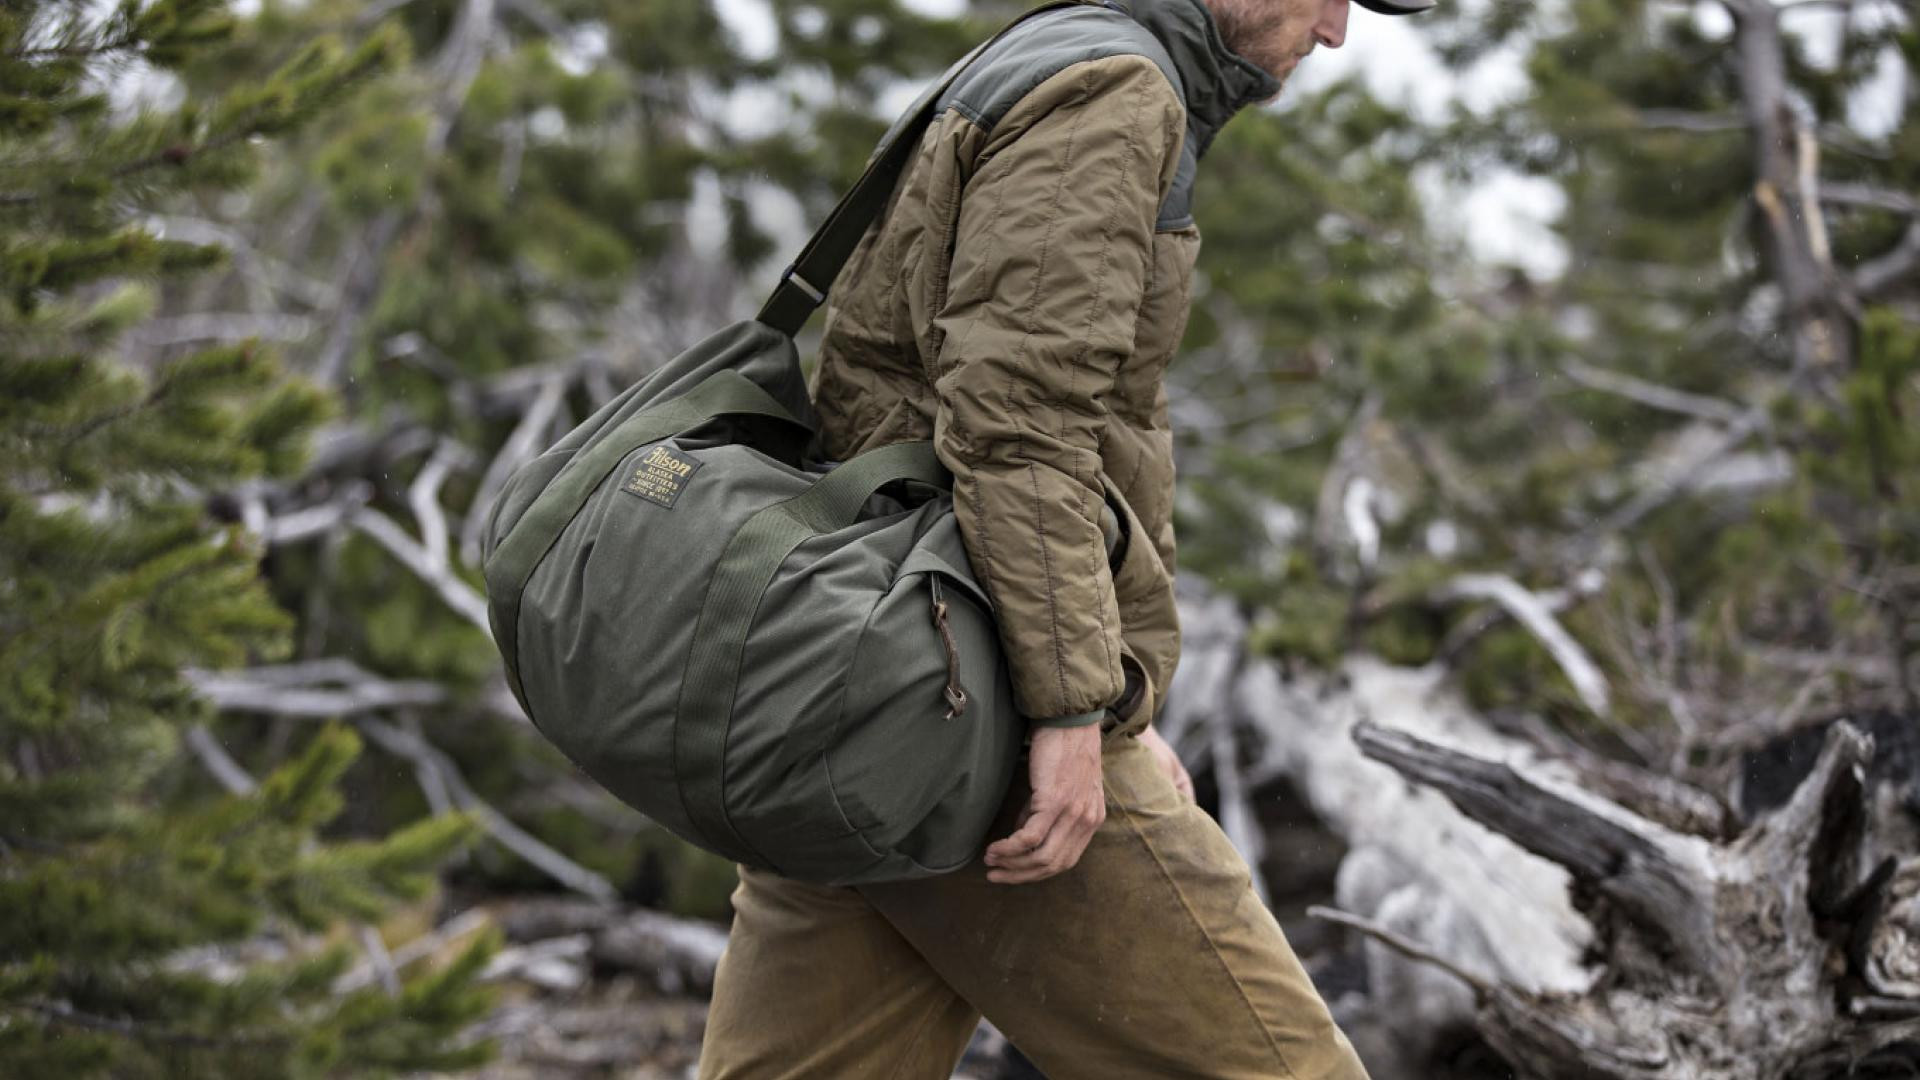 The Filson ballistic nylon barrel pack and the ultra-light jacket